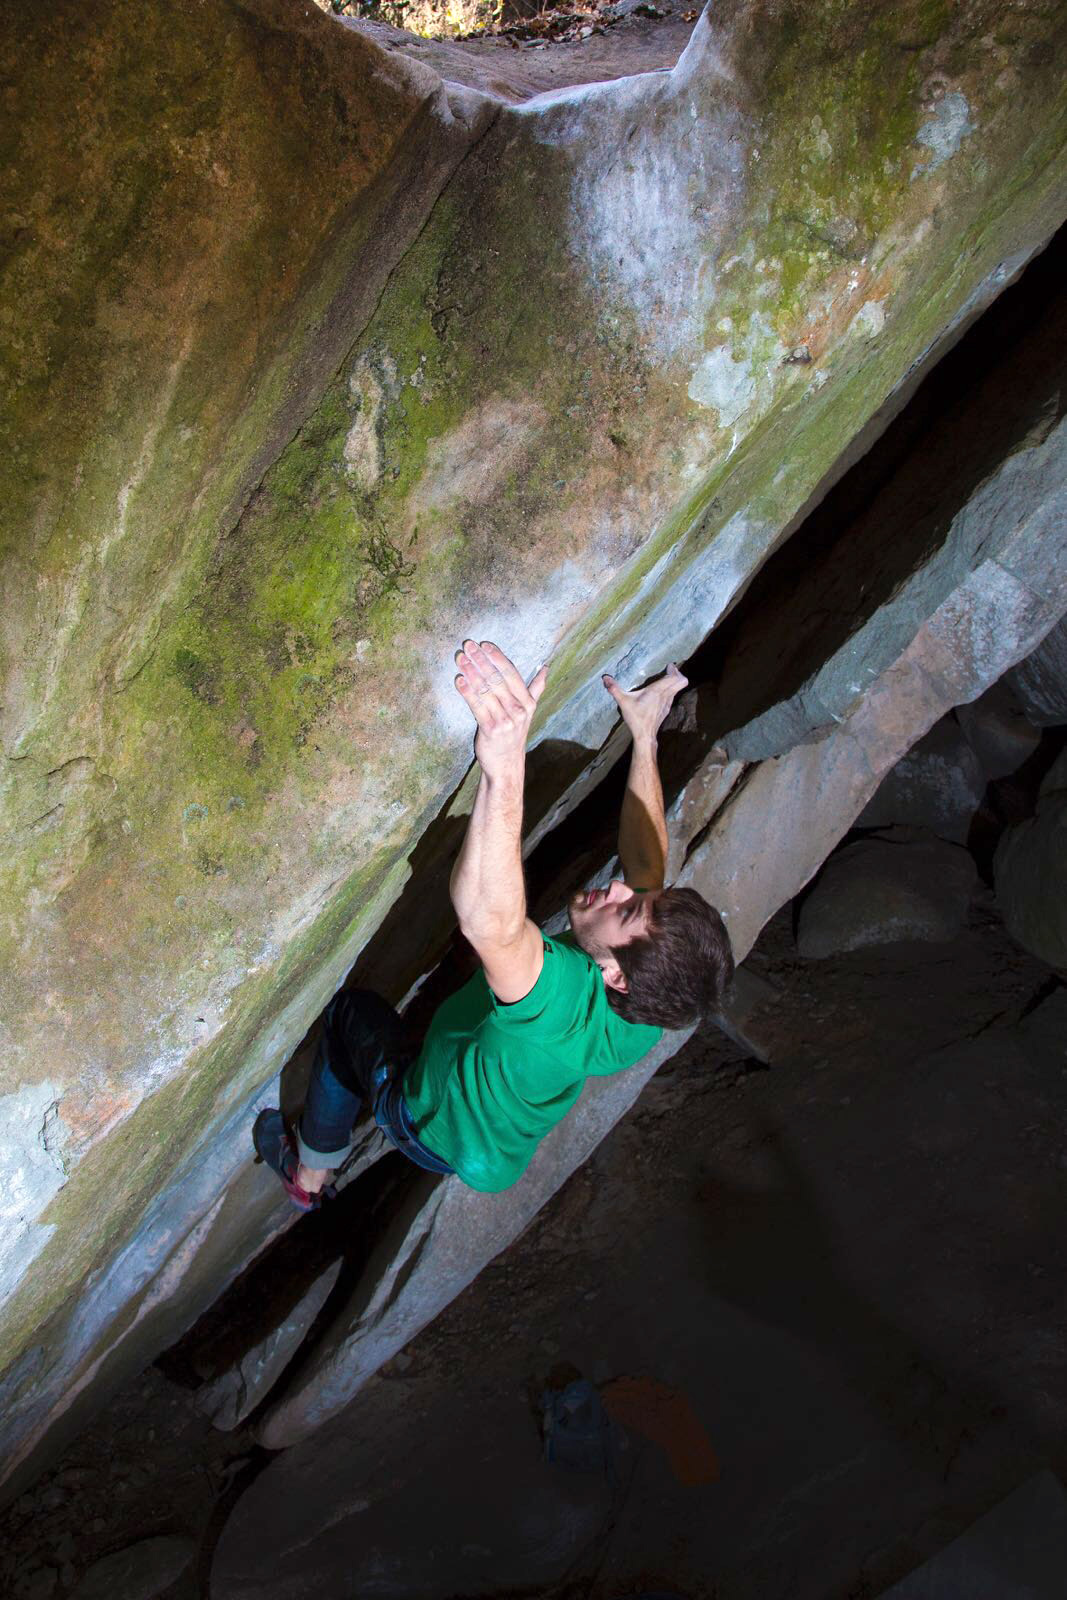 Pol Roca on Double Bubble (V14/8B+), a first ascent he made at La Comarca. Photo: Estabn Laoz.